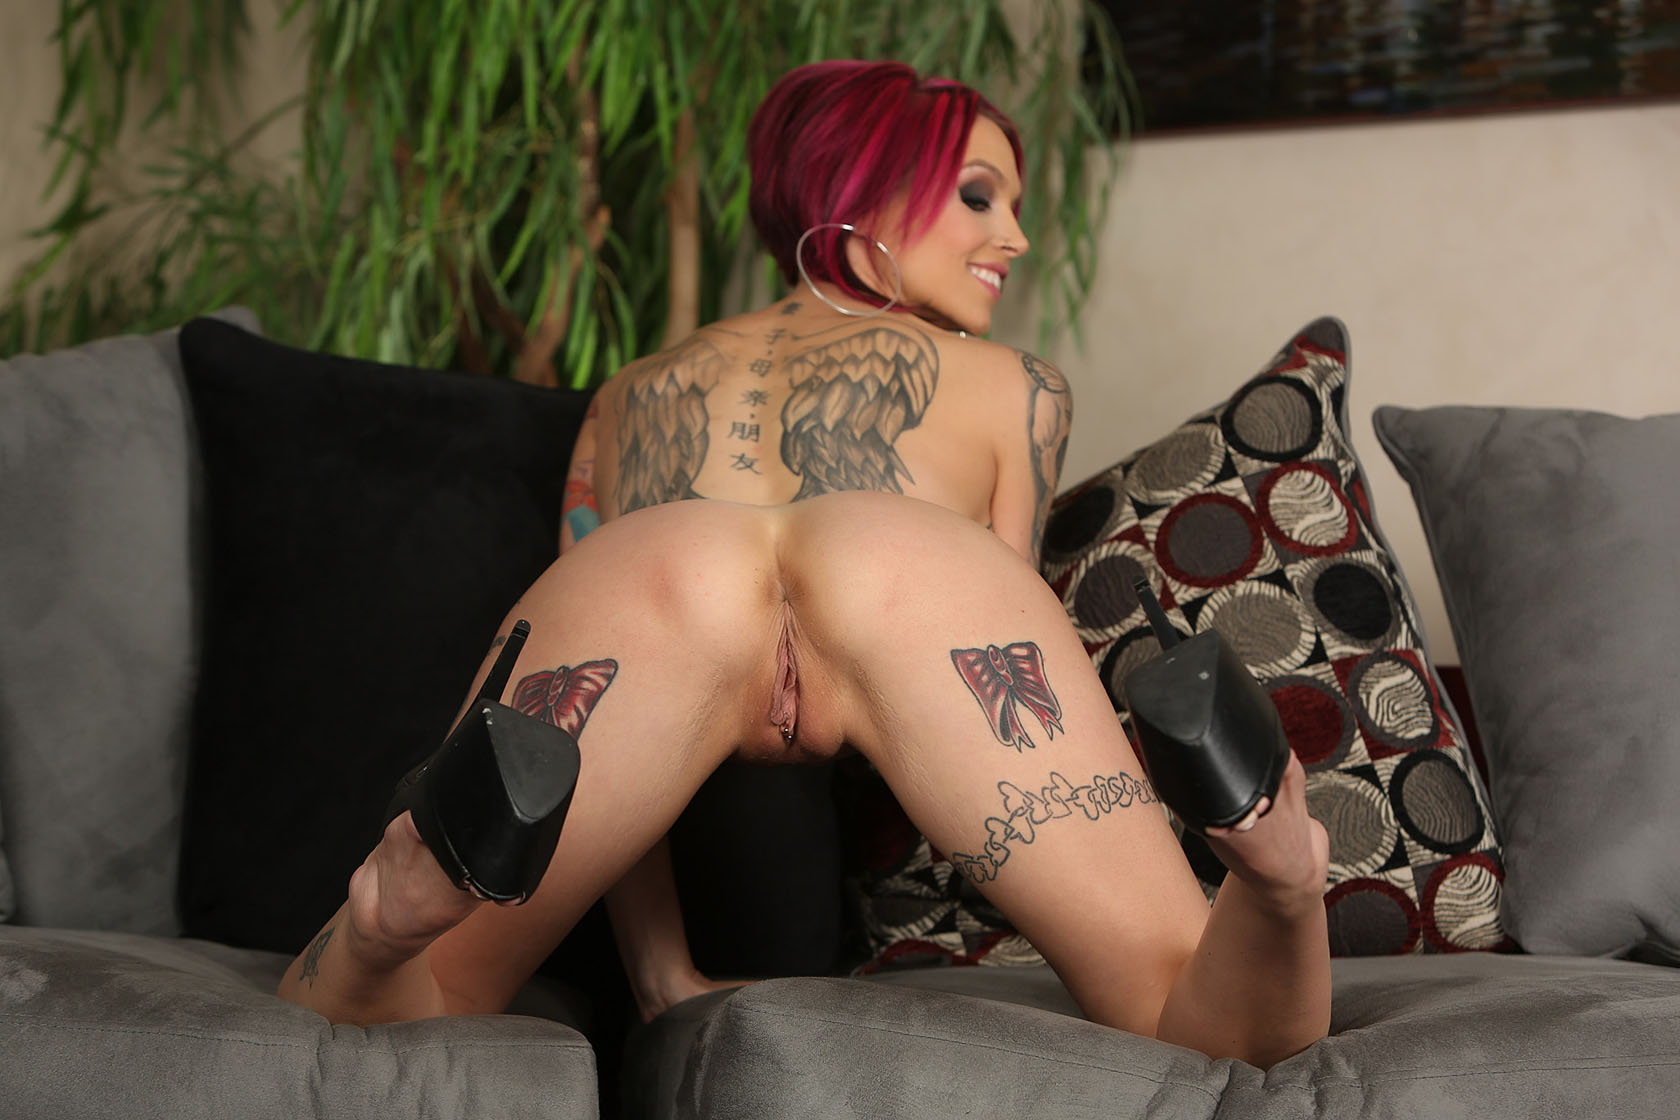 Download free anna bell peaks live with her friend porn photo download mobile porn